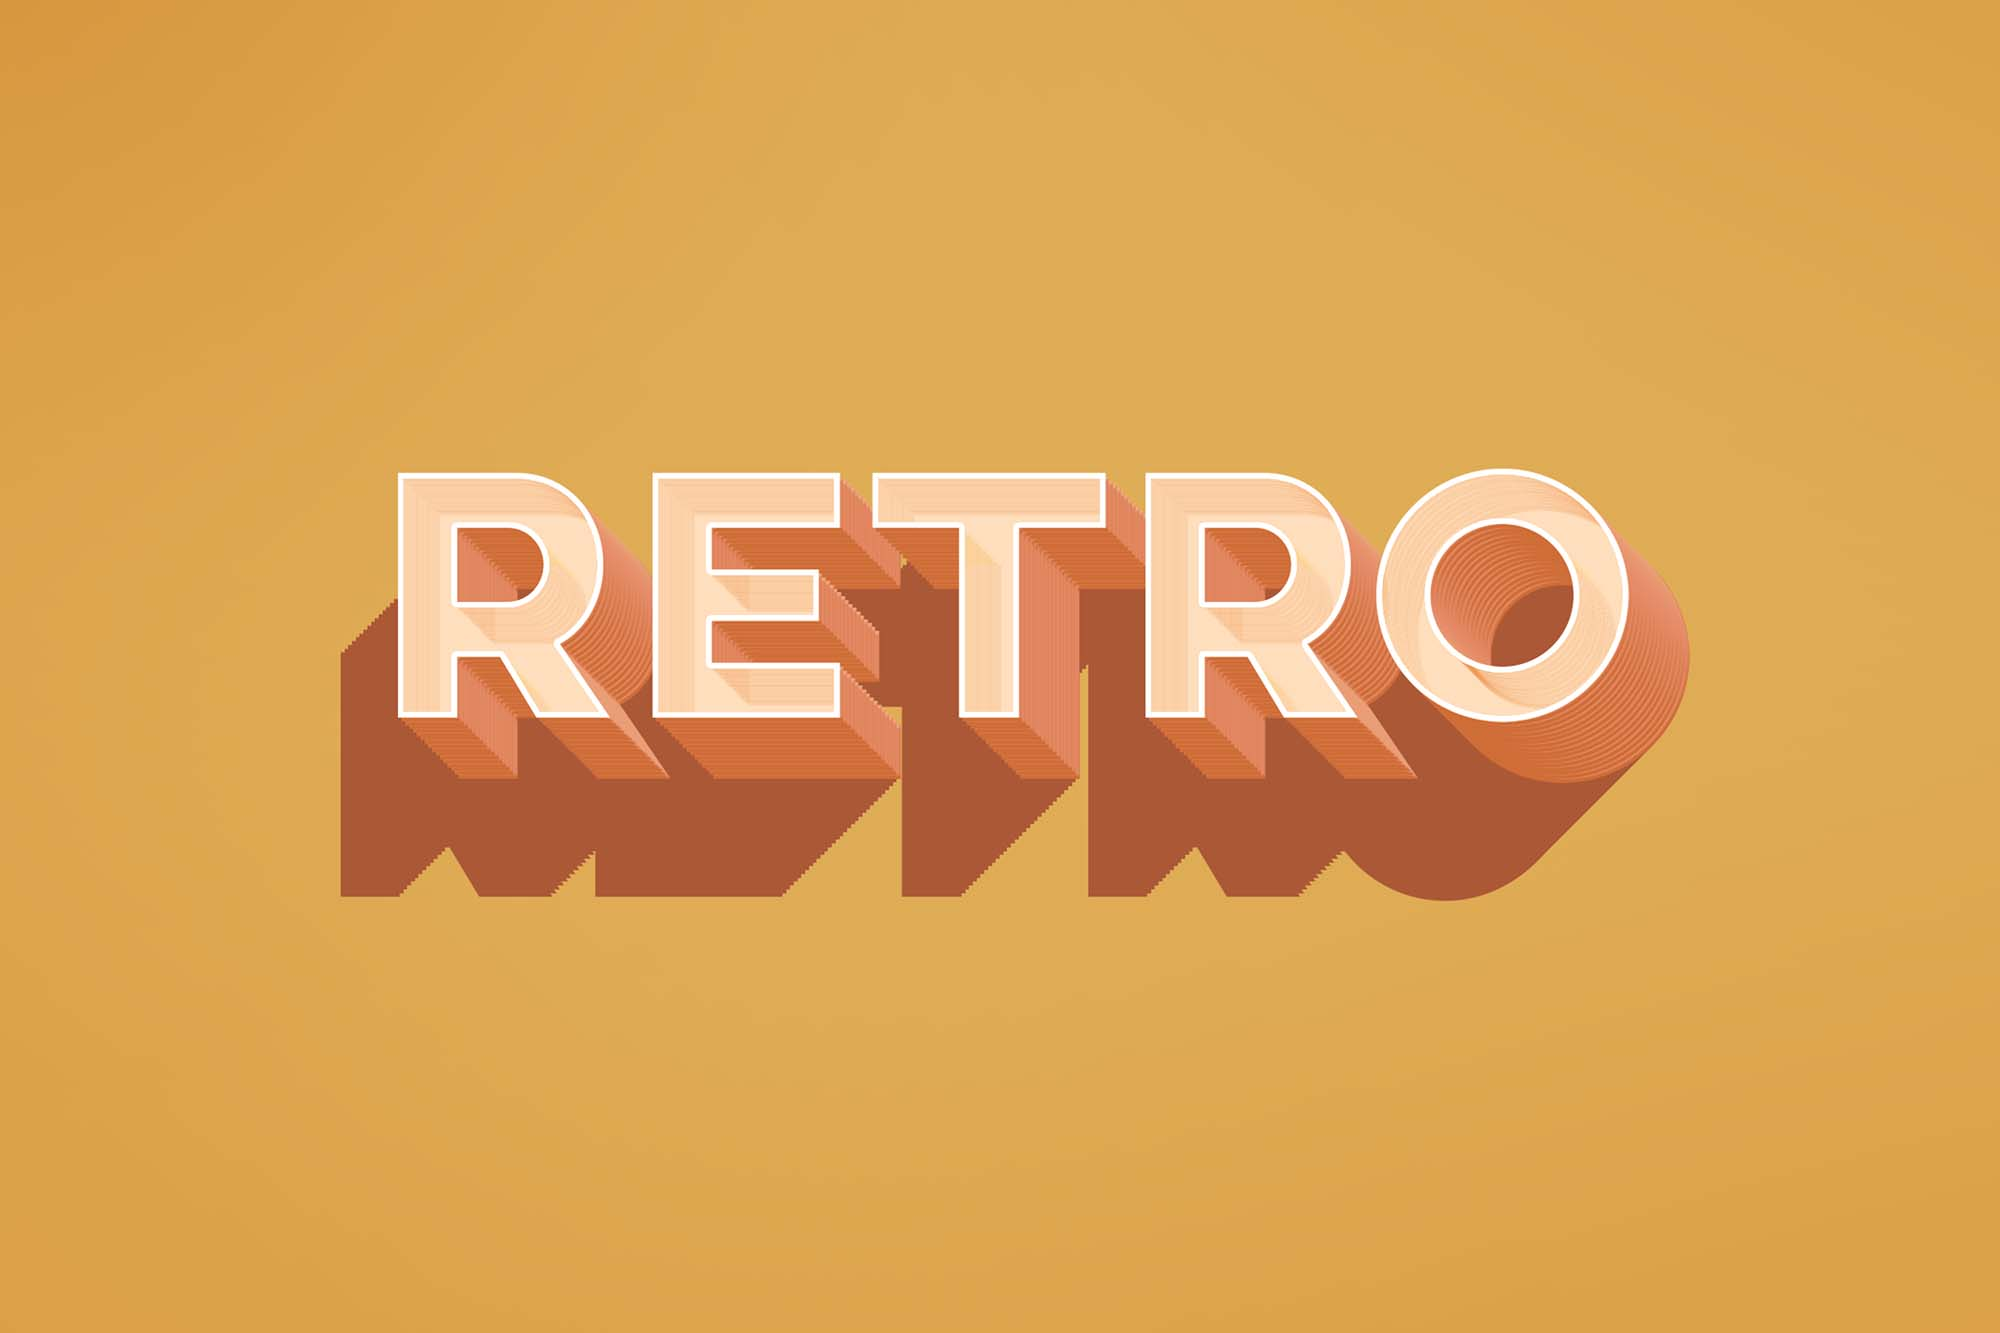 Retro Text Effect Mockup